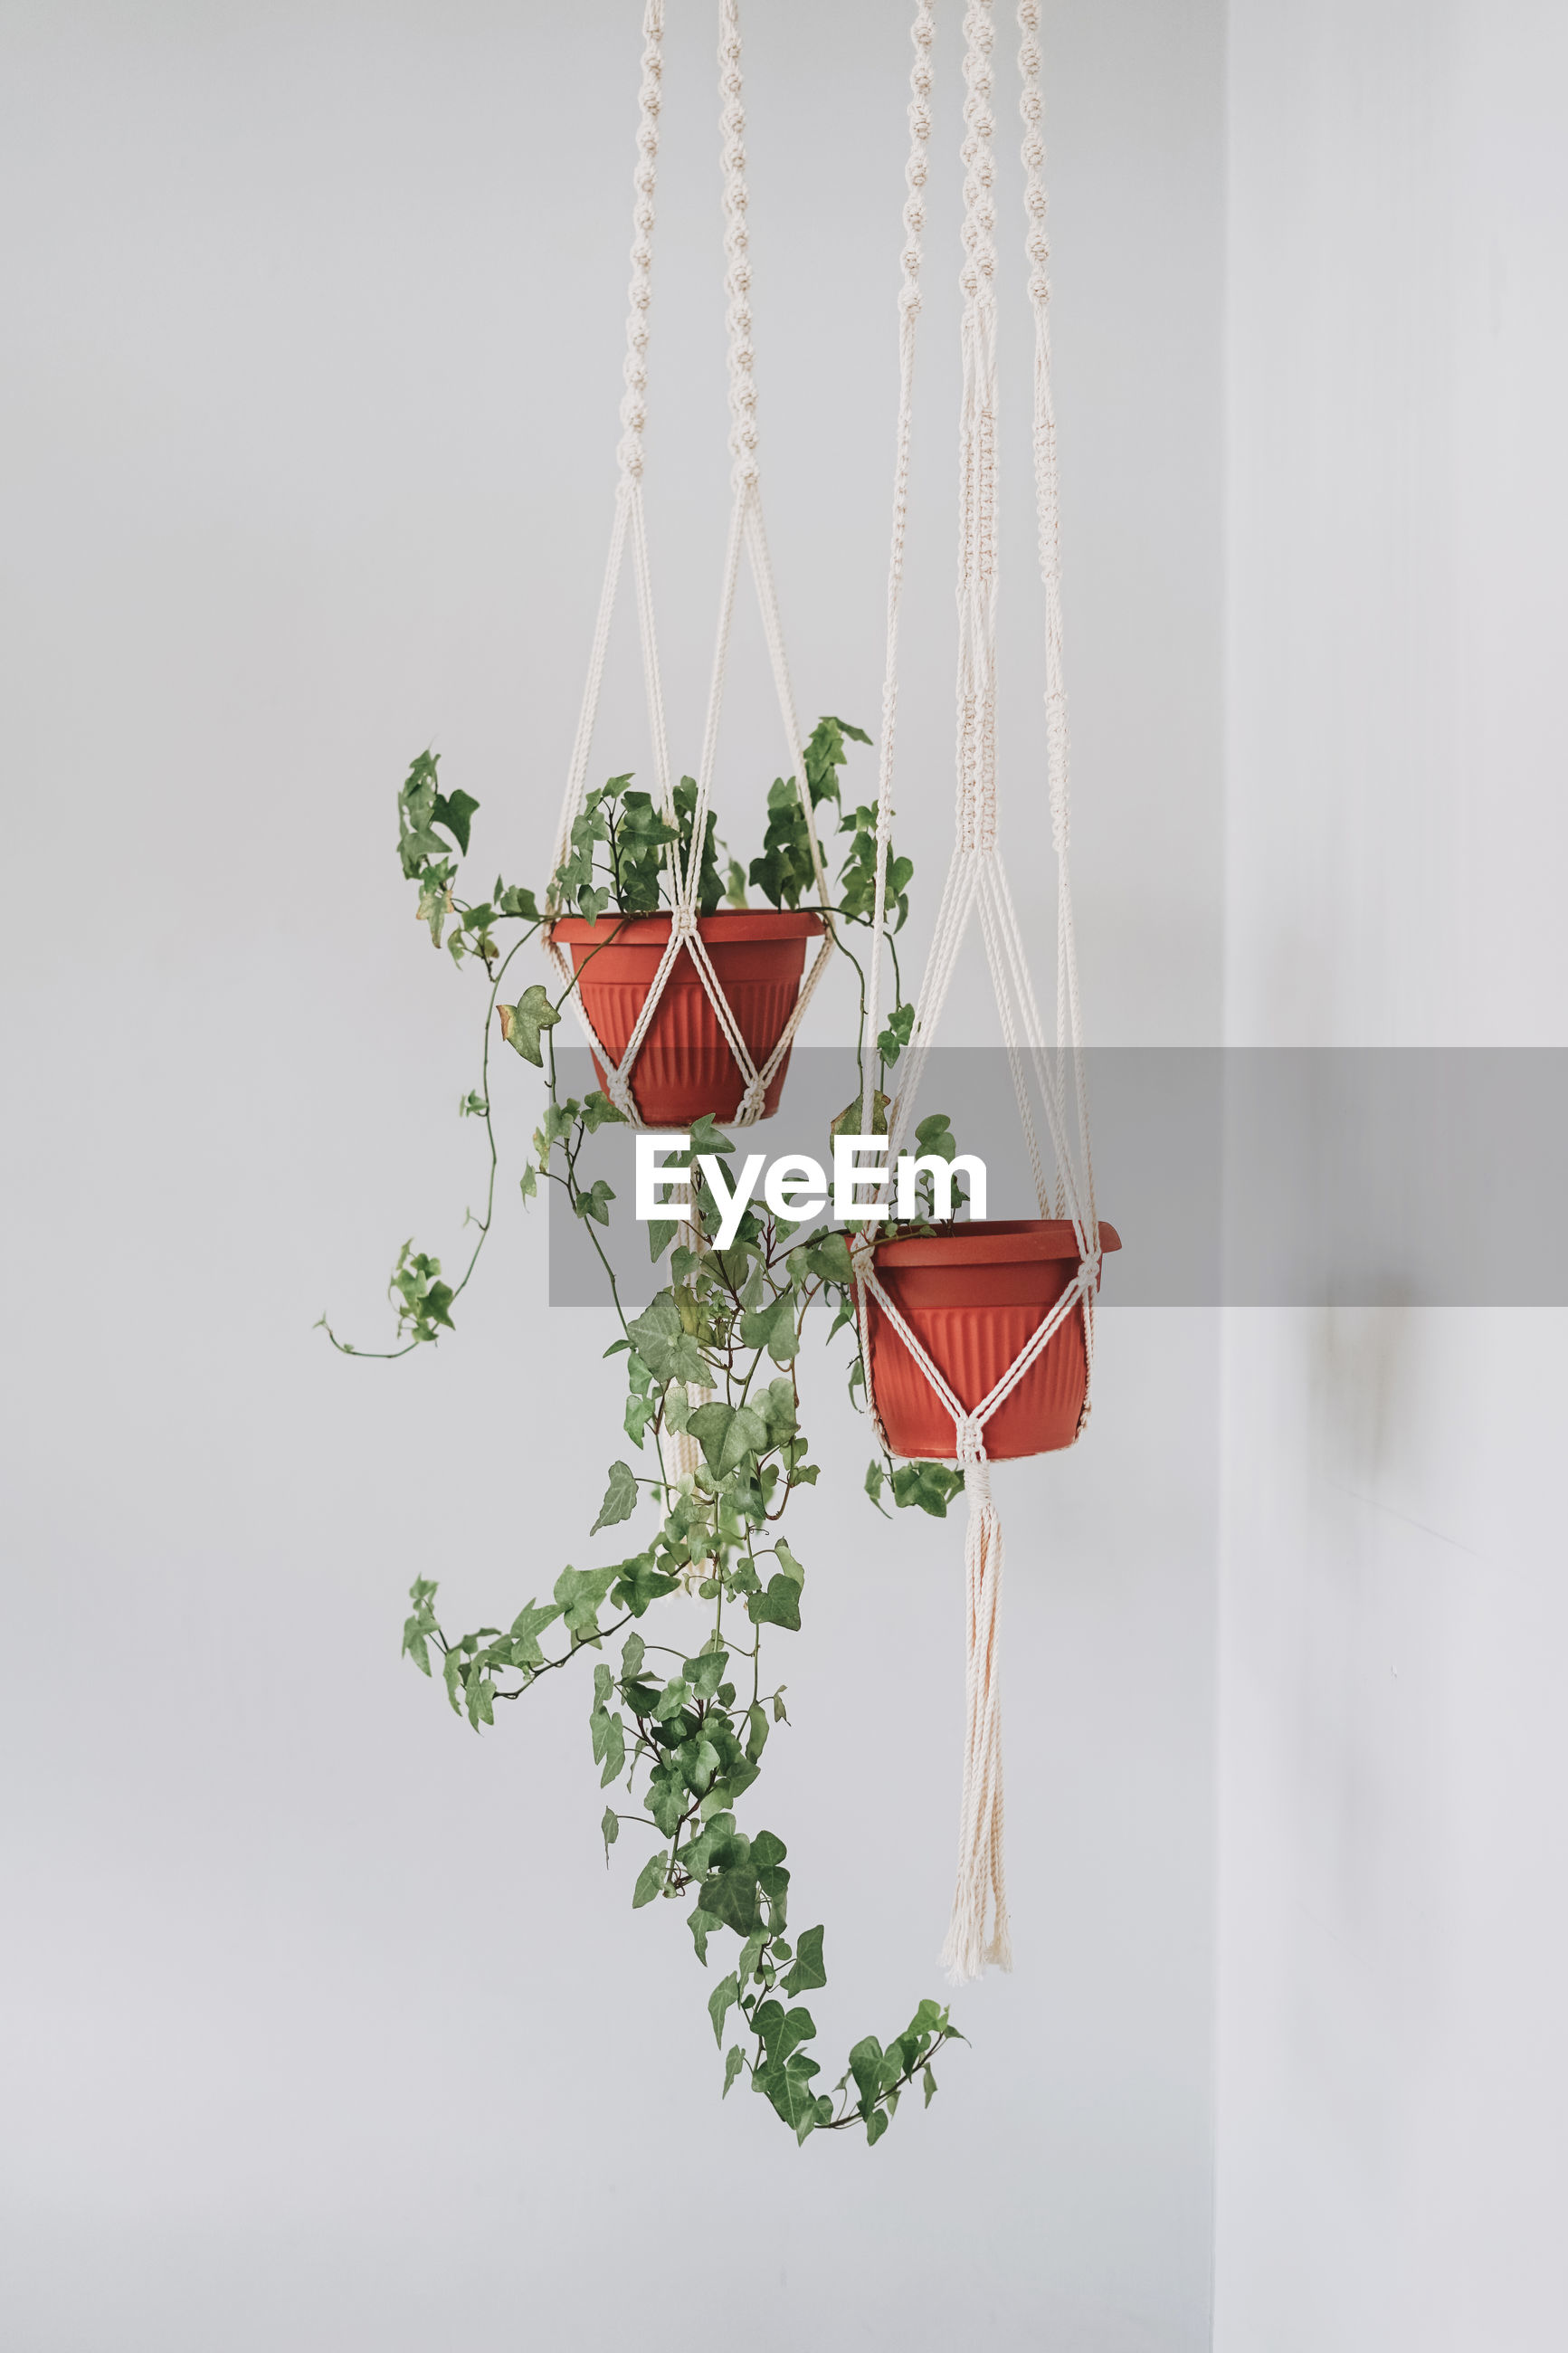 RED CHILI PEPPER HANGING ON WALL